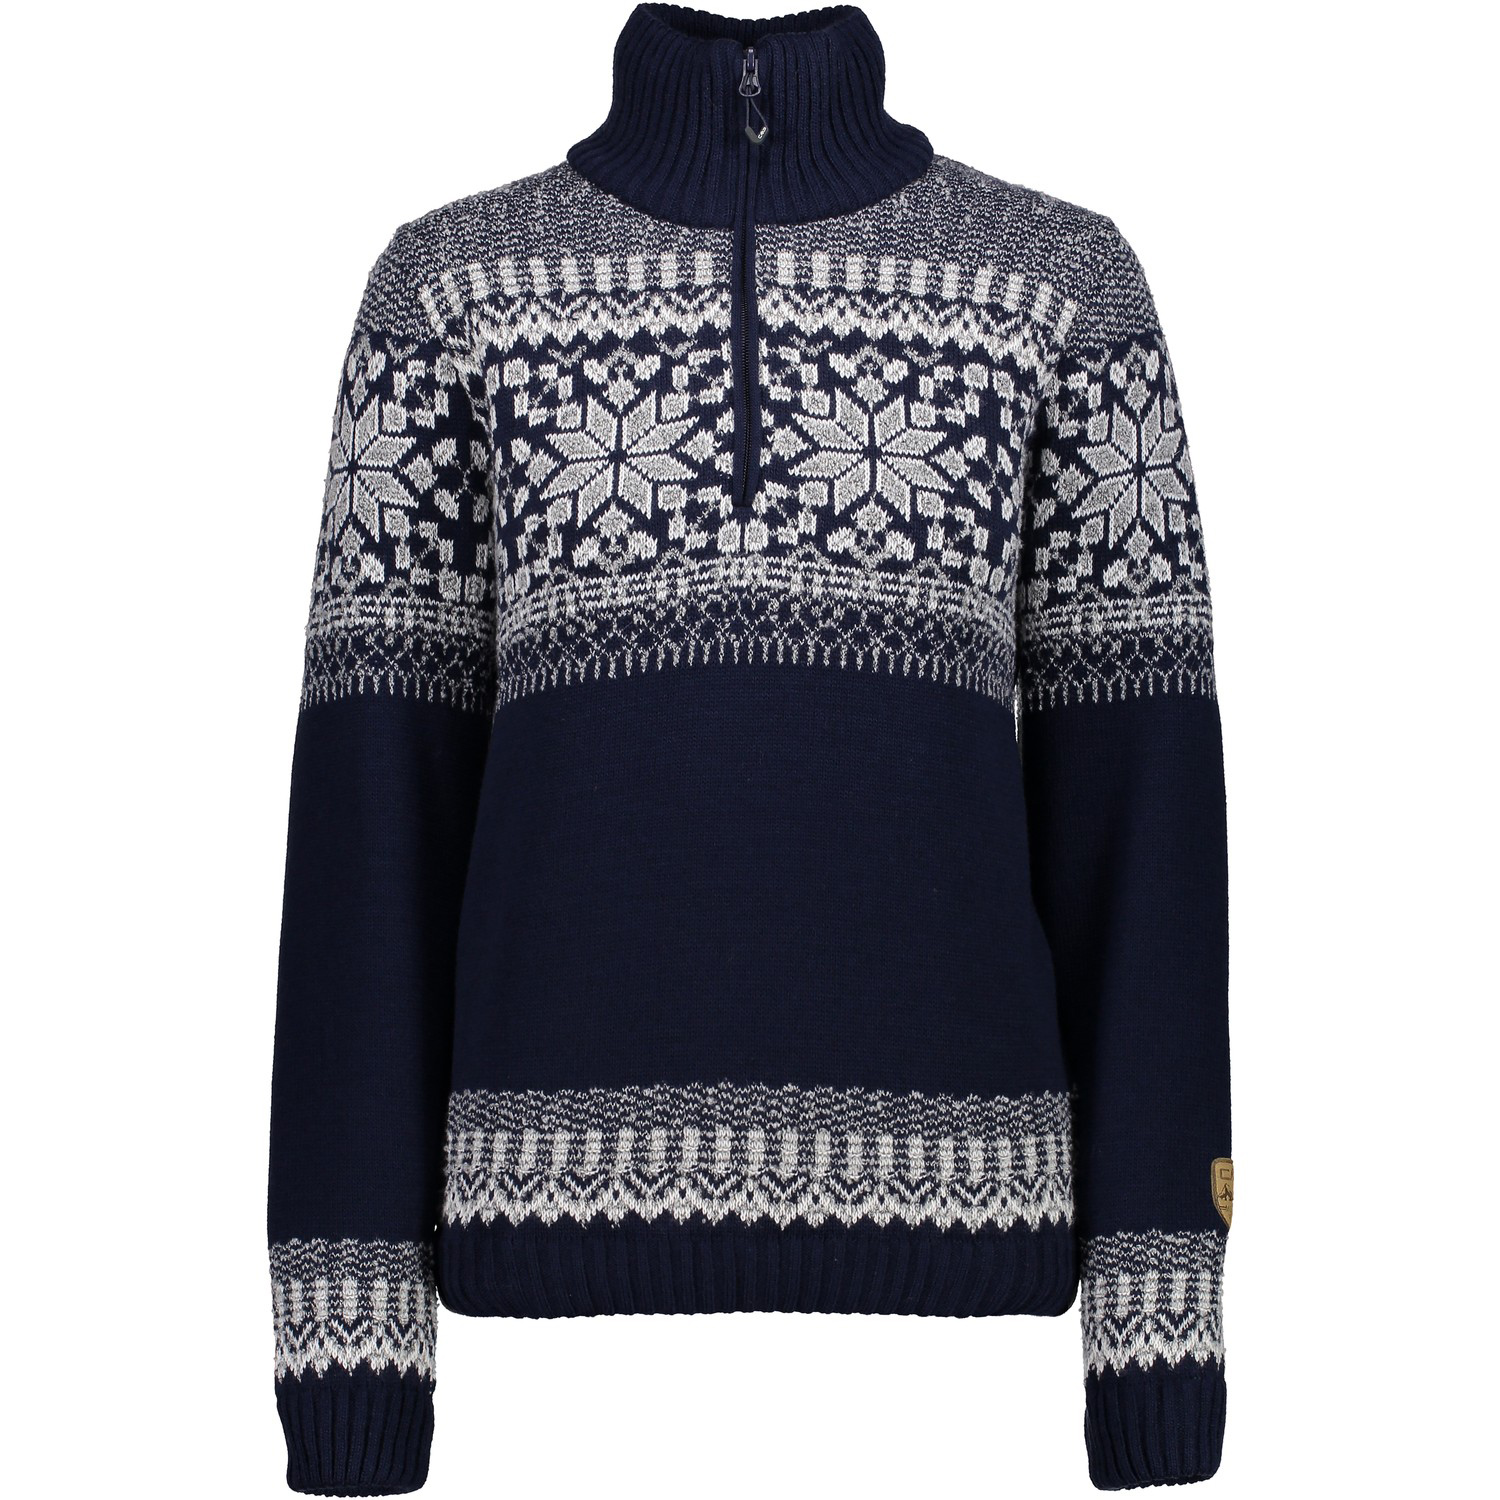 CMP Damen Knitted Pullover